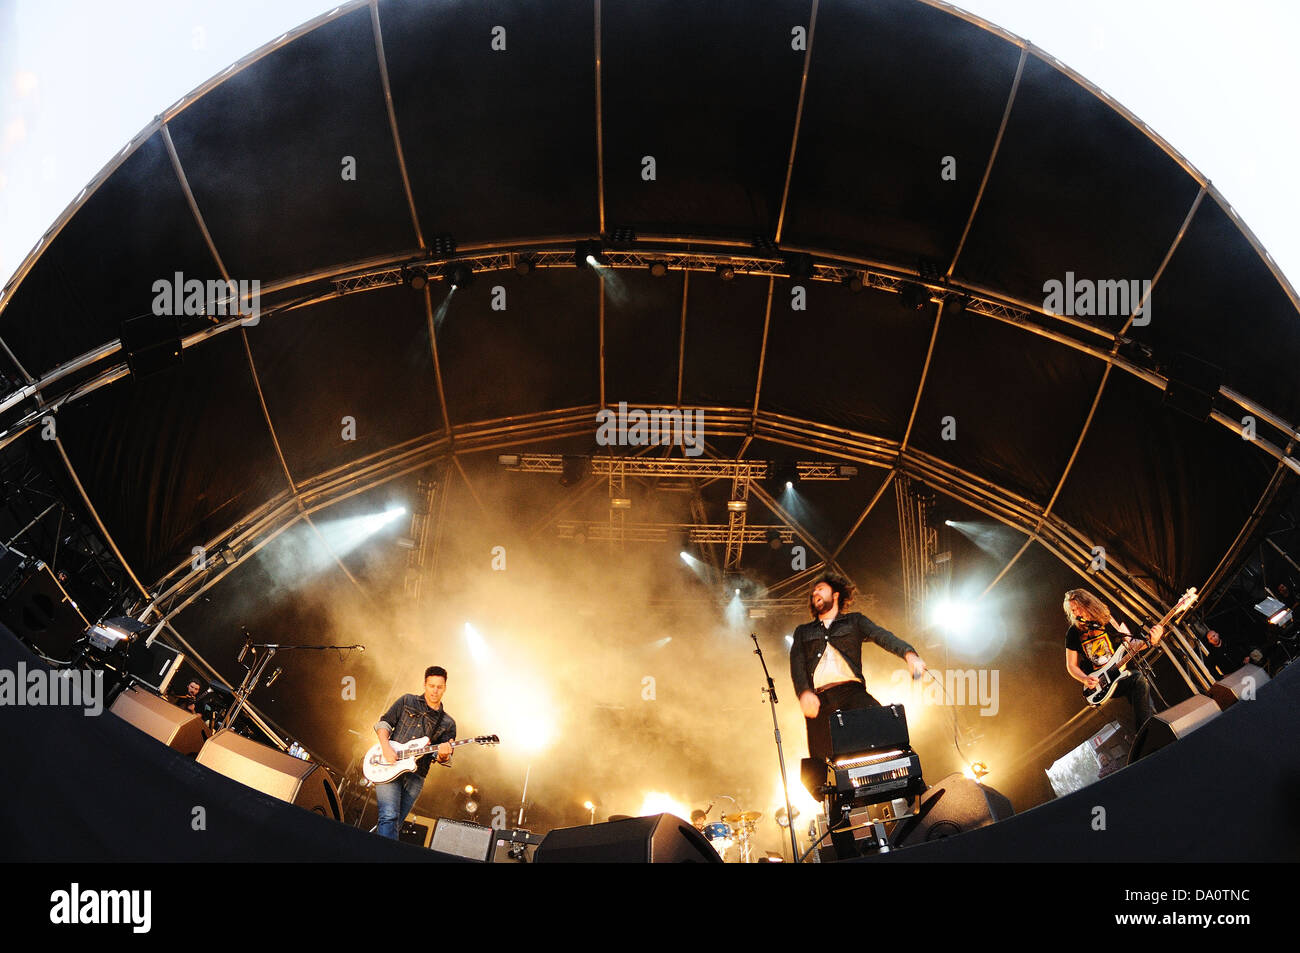 BARCELONA - MAY 22: The Vaccines band performance at Heineken Primavera Sound 2013 Festival, Ray-Ban Stage. - Stock Image